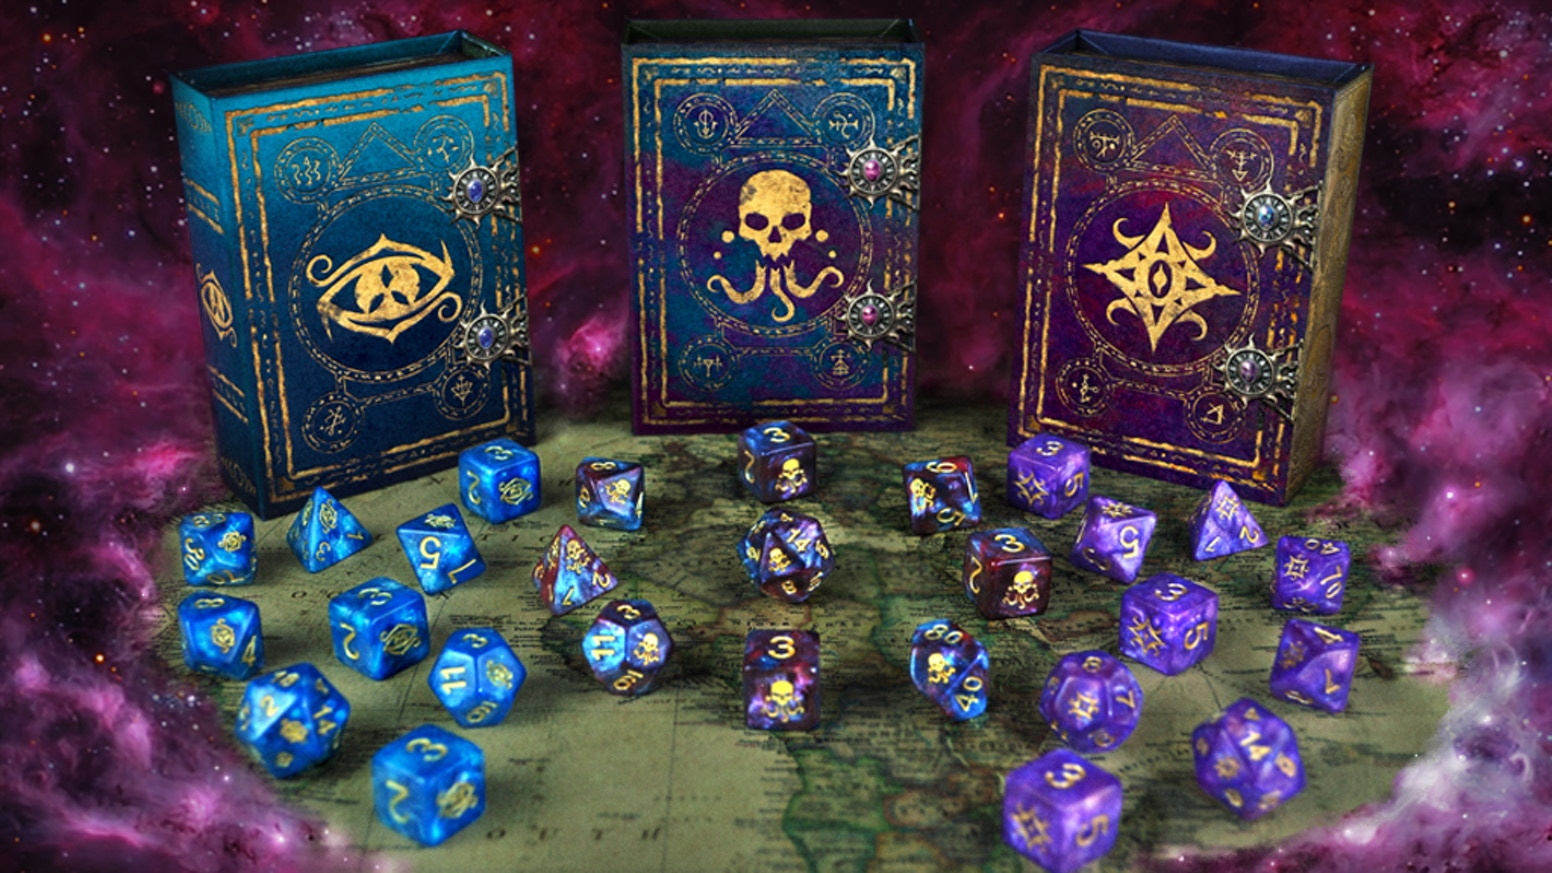 Arcane dice designs: The Eye of Chaos, Seal of Yog-Sothoth, and The Star of Azathoth. Includes magnetic spell book box, dice trays, etc